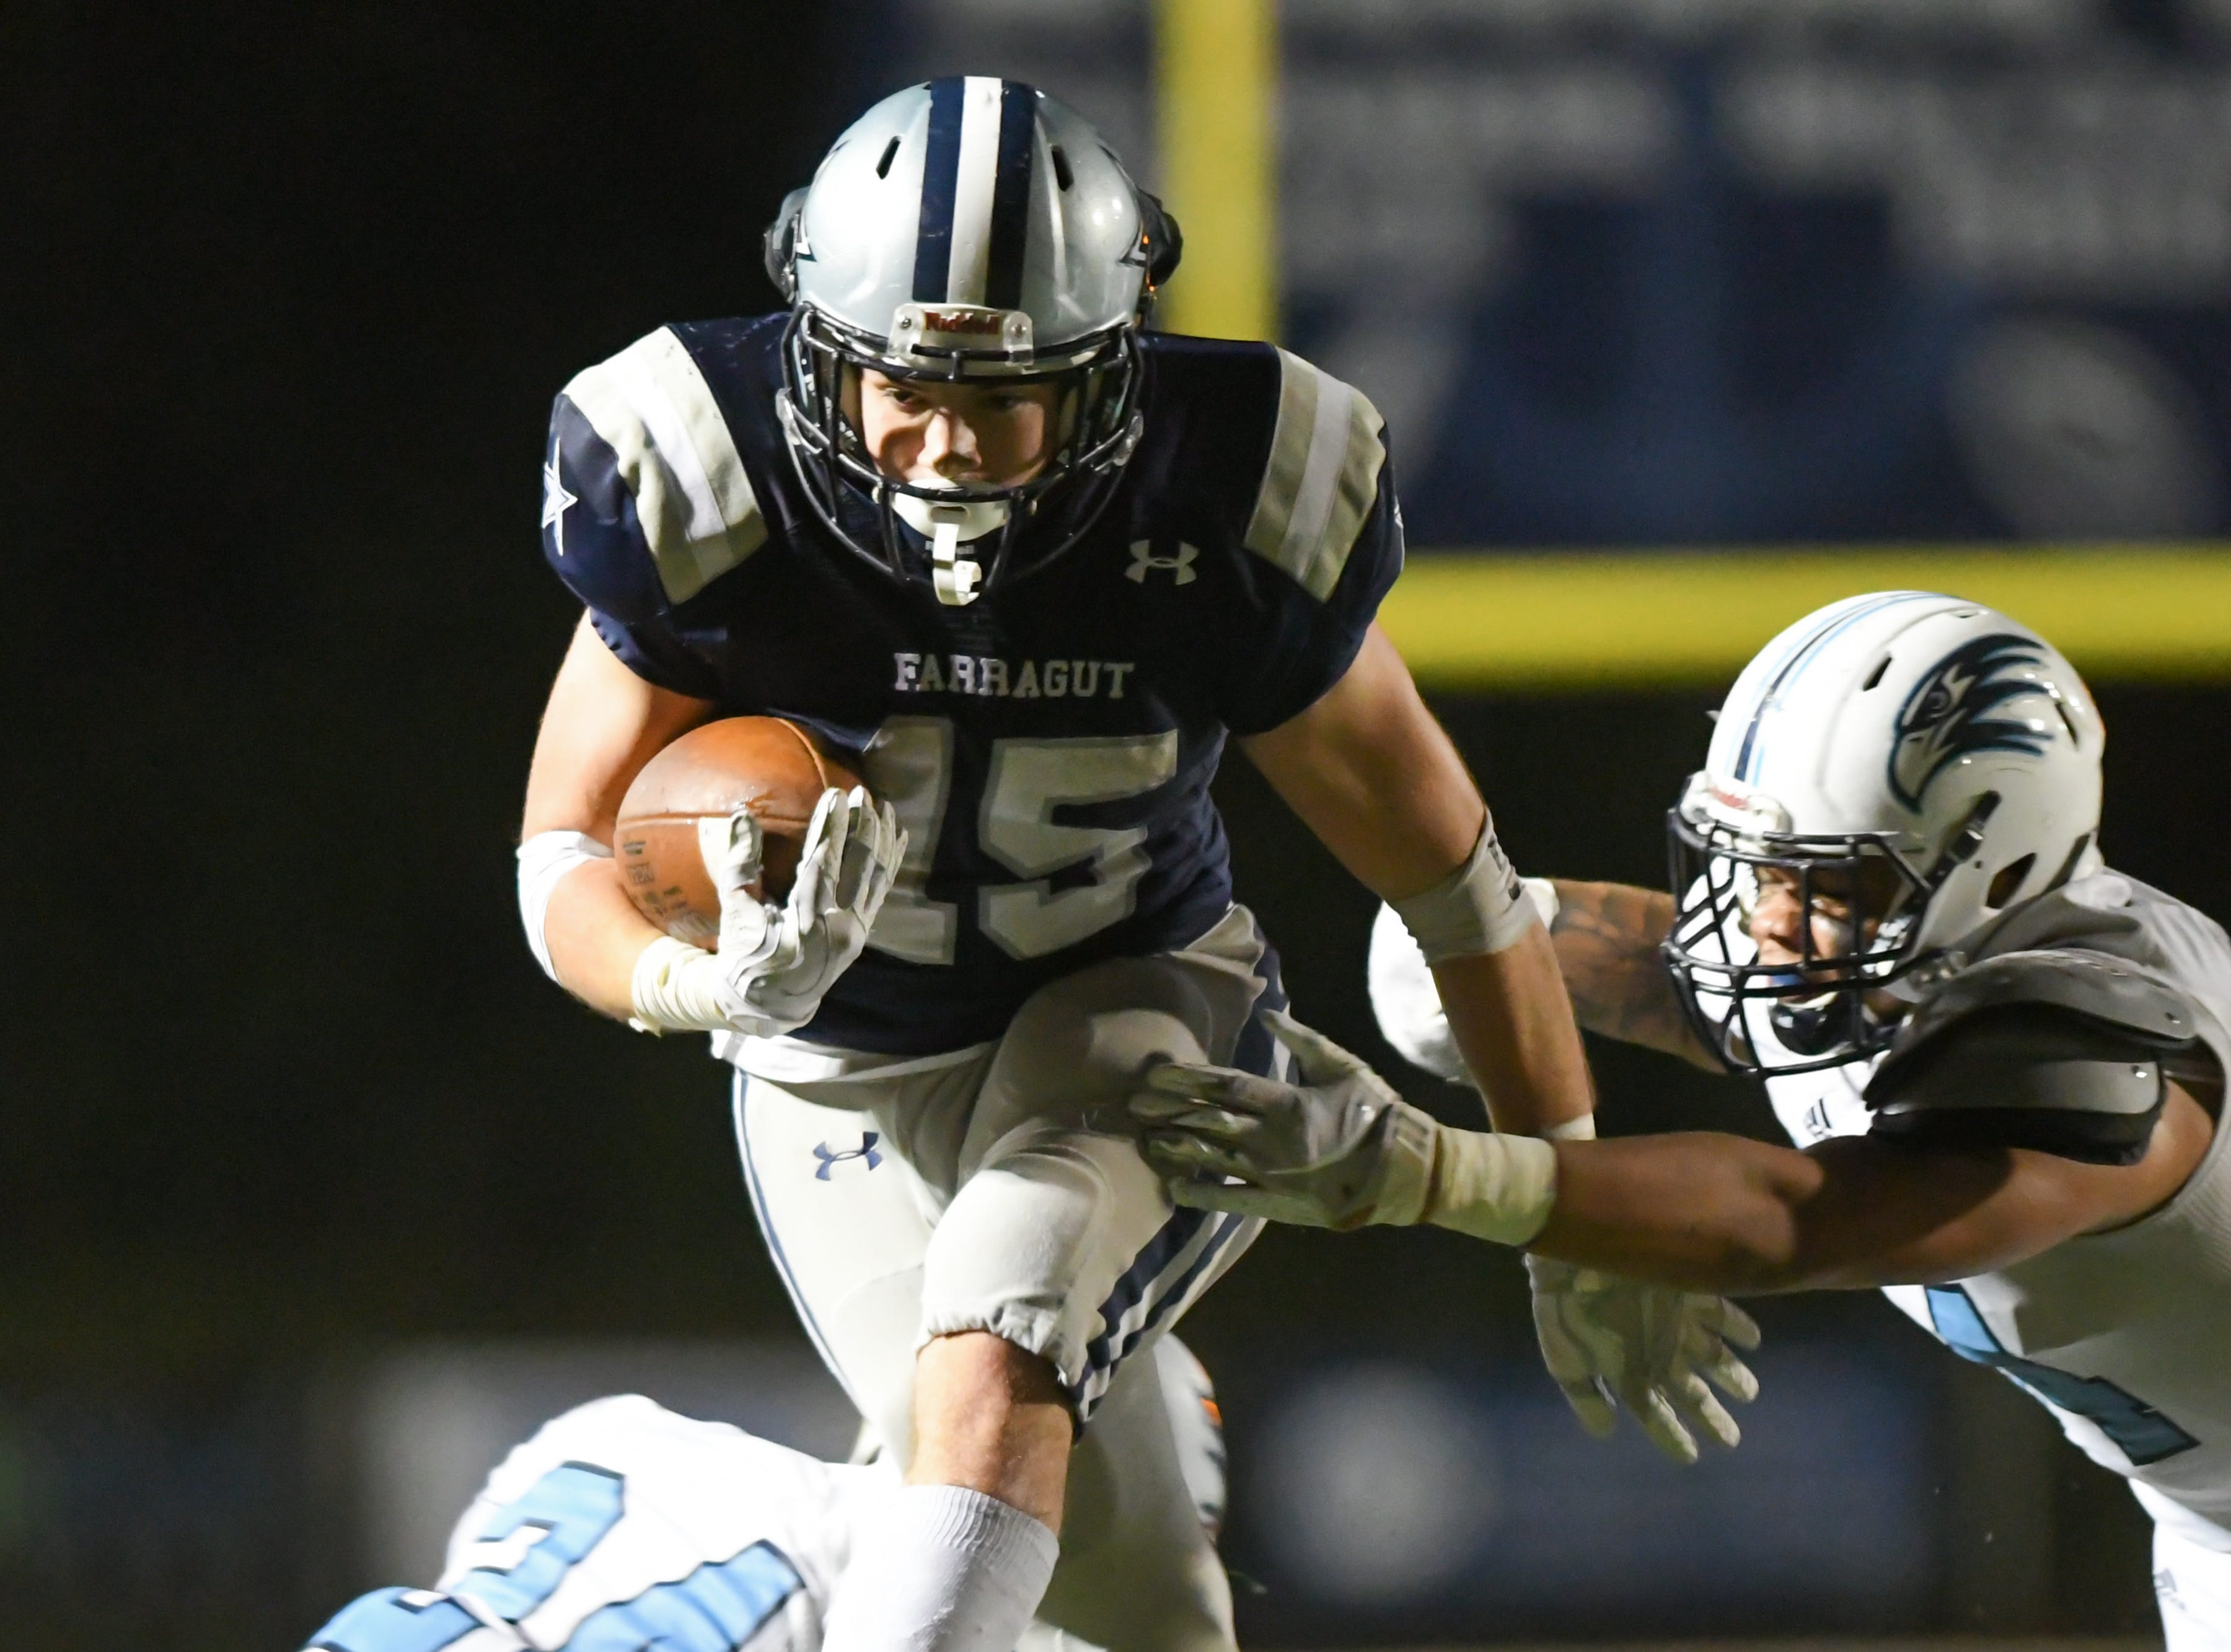 Farragut's Kyle Carter (15) runs with the ball against Hardin Valley during the football game at Farragut on Friday, Oct. 26, 2018